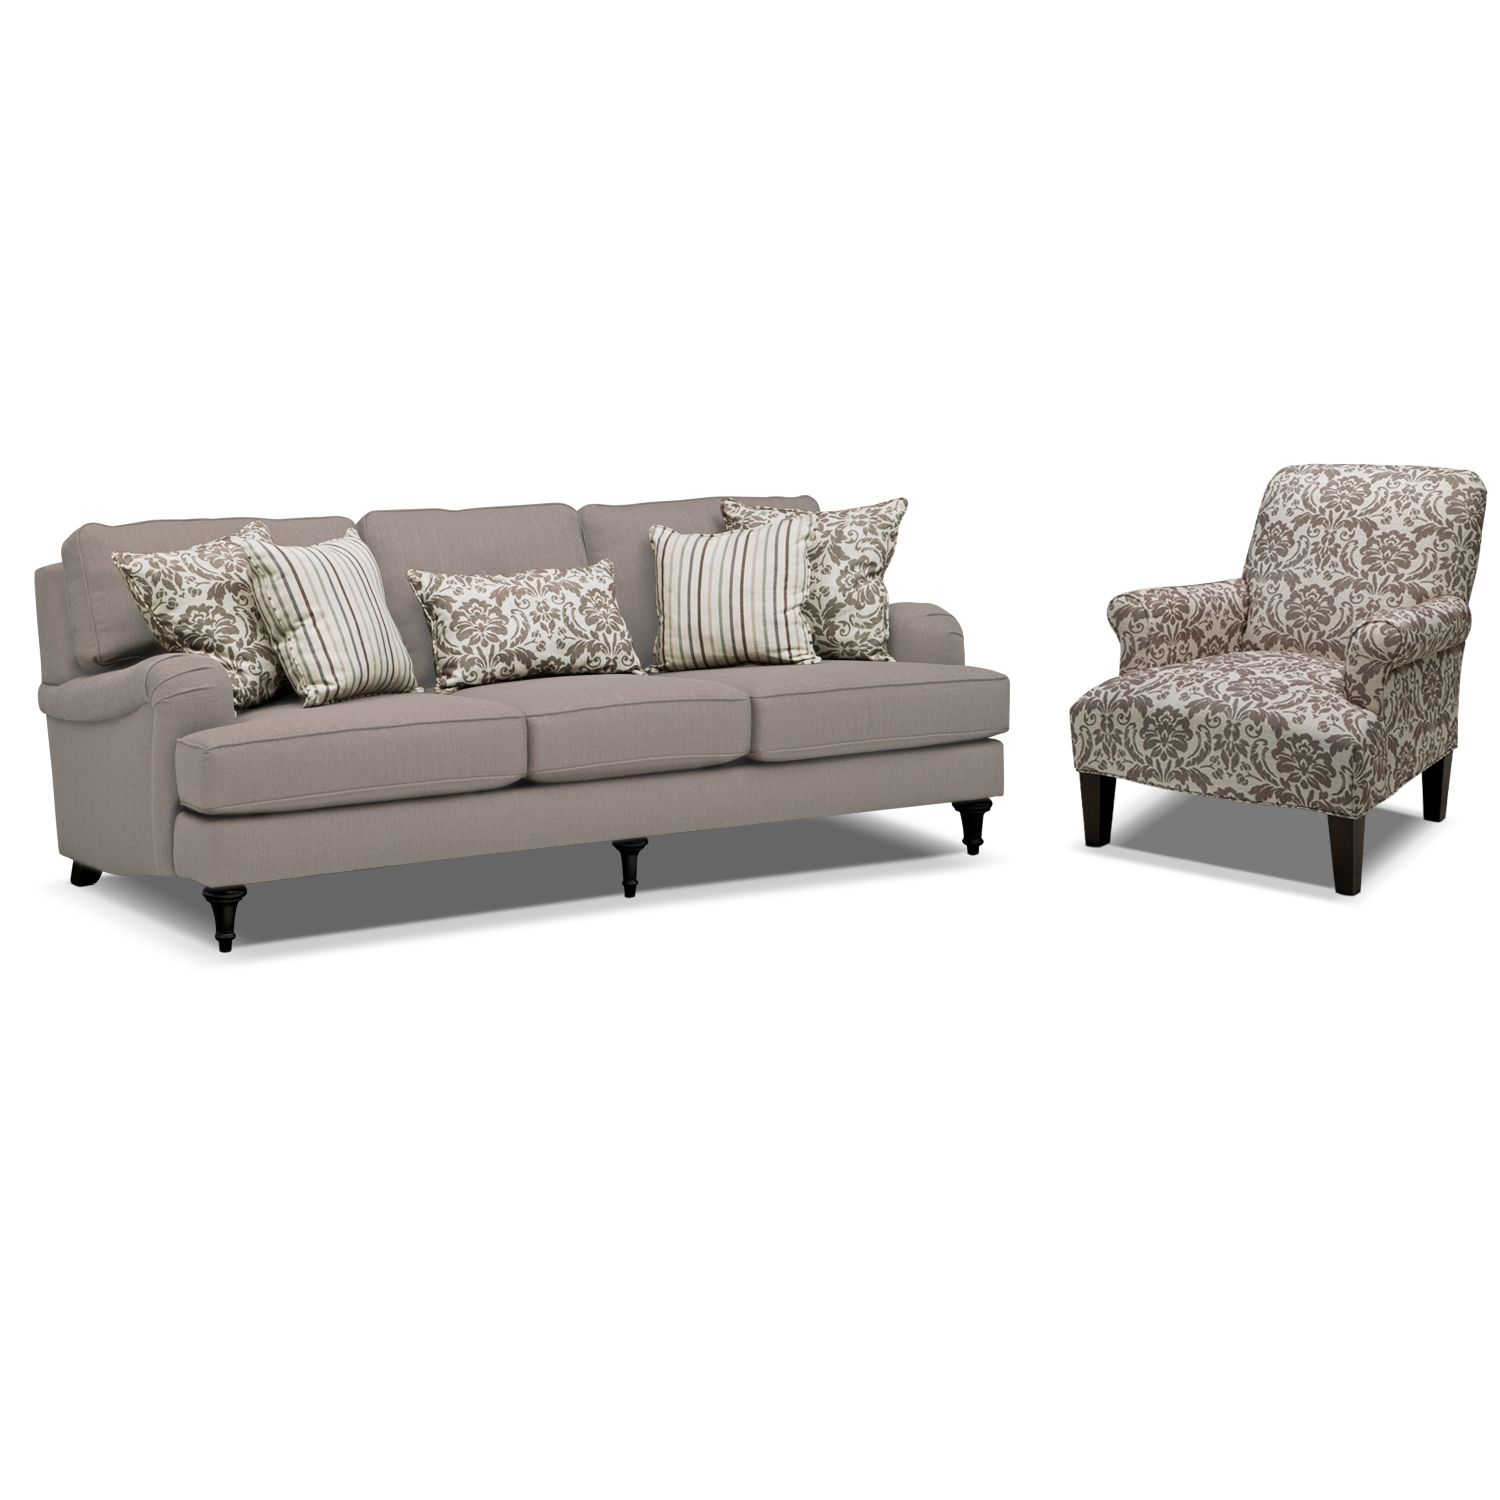 Candice Sofa and Accent Chair Set - Gray | Living room furniture ...